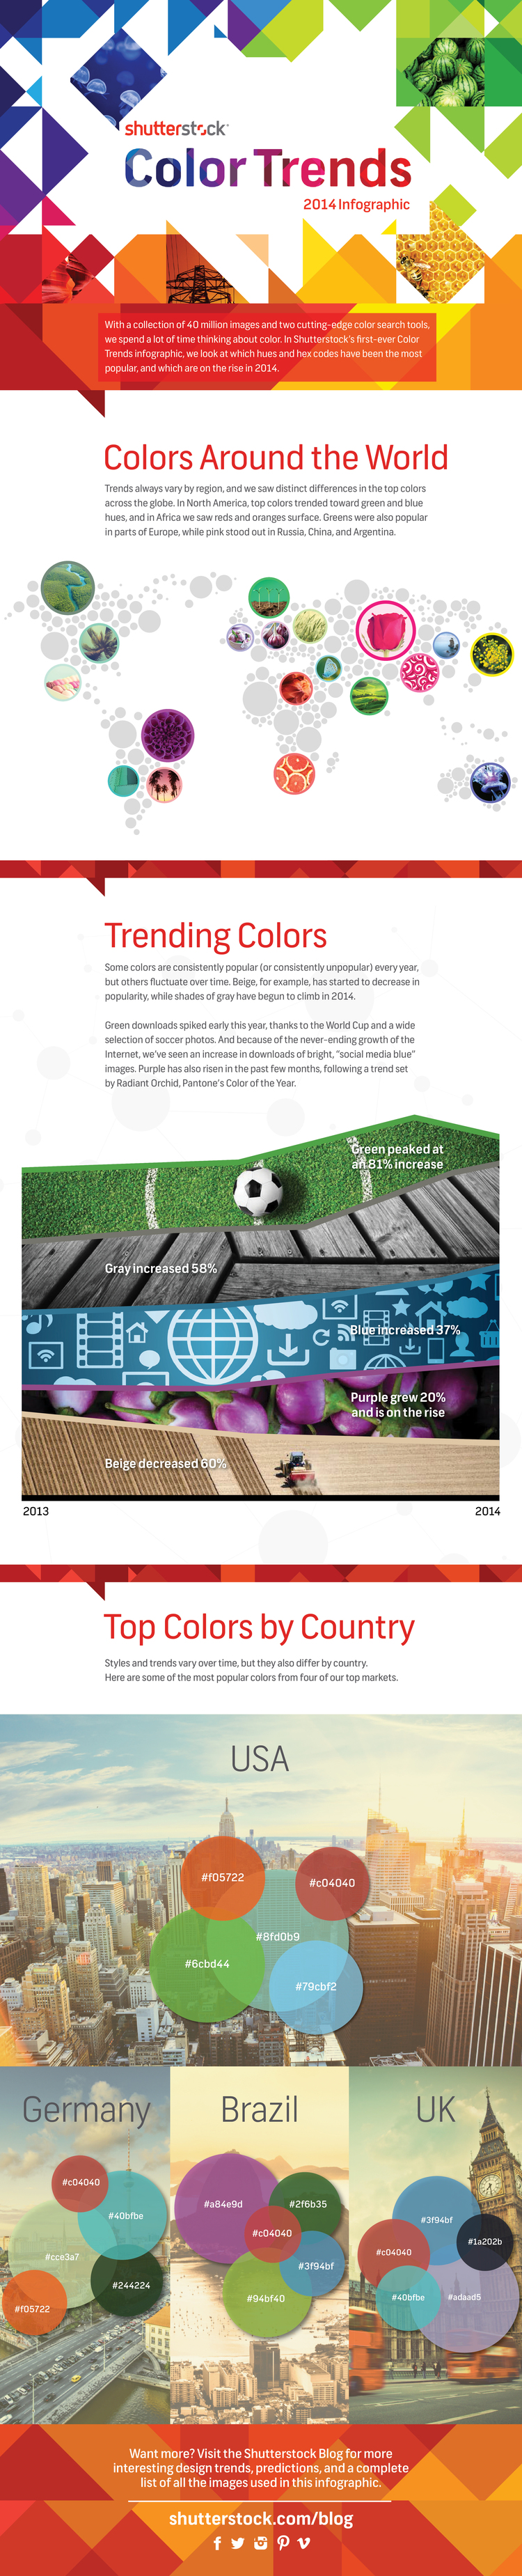 Infographic - Color Trends in 2014